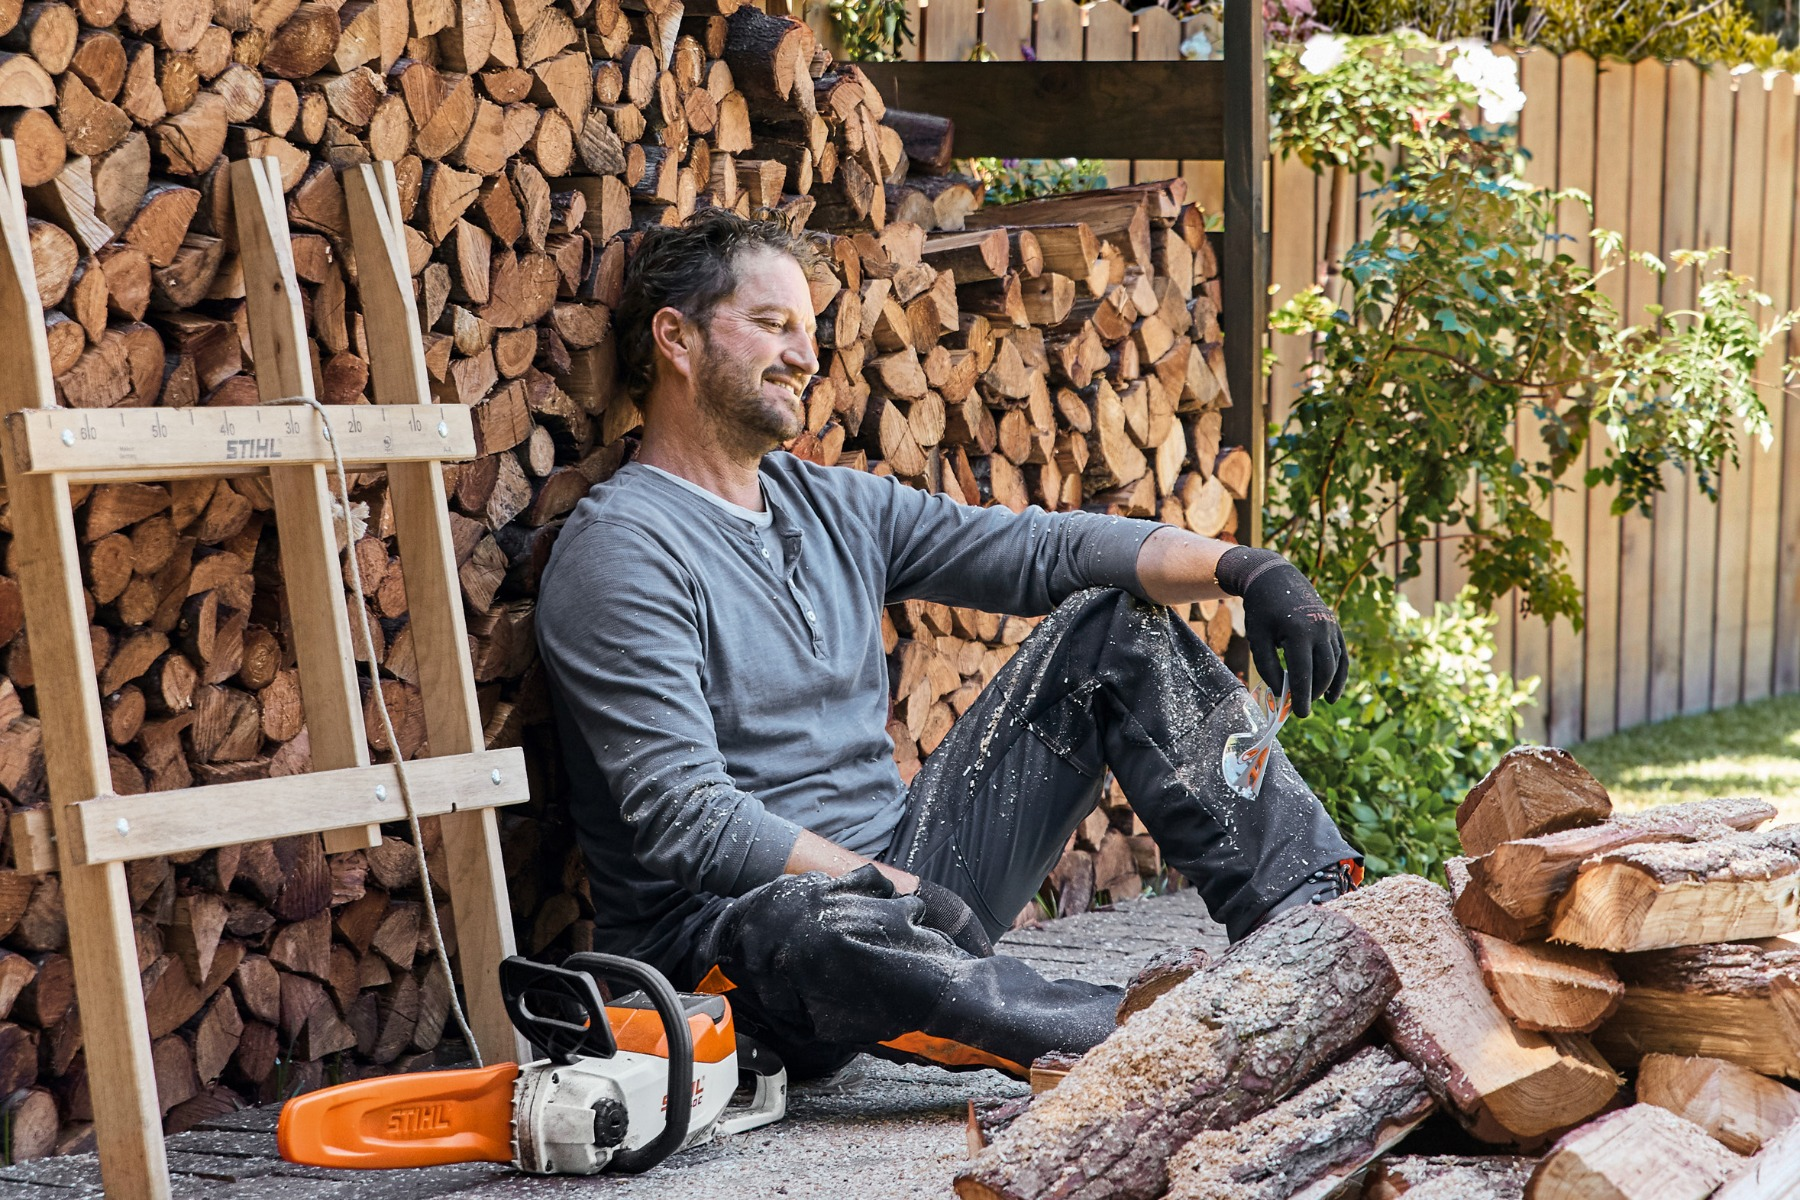 Cutting your firewood with saw